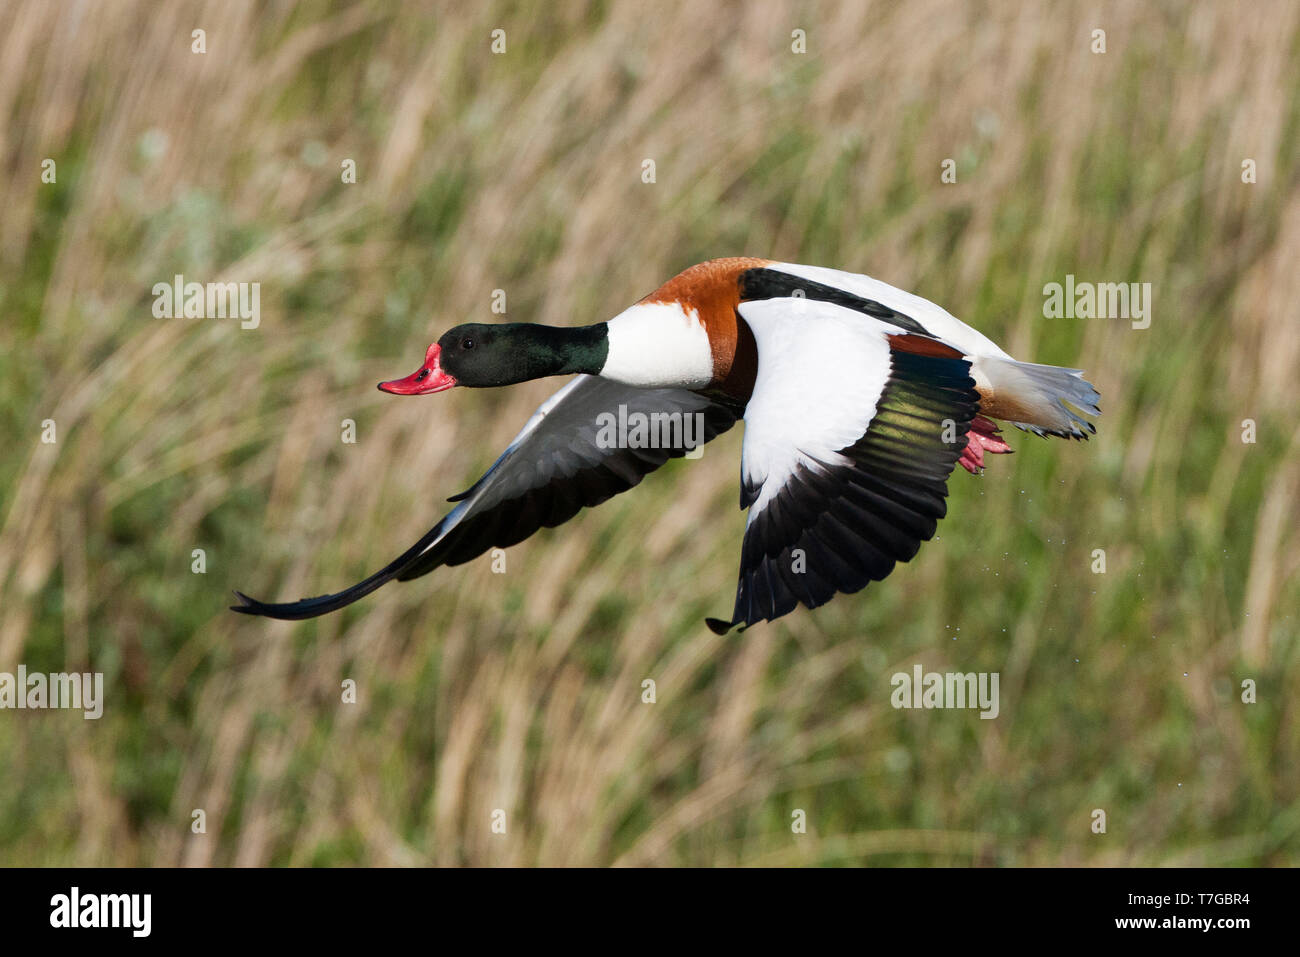 Male Common Shelduck (Tadorna tadorna) taking off from a small lake in the dunes of Texel, Netherlands. Trailing water drops behind. - Stock Image